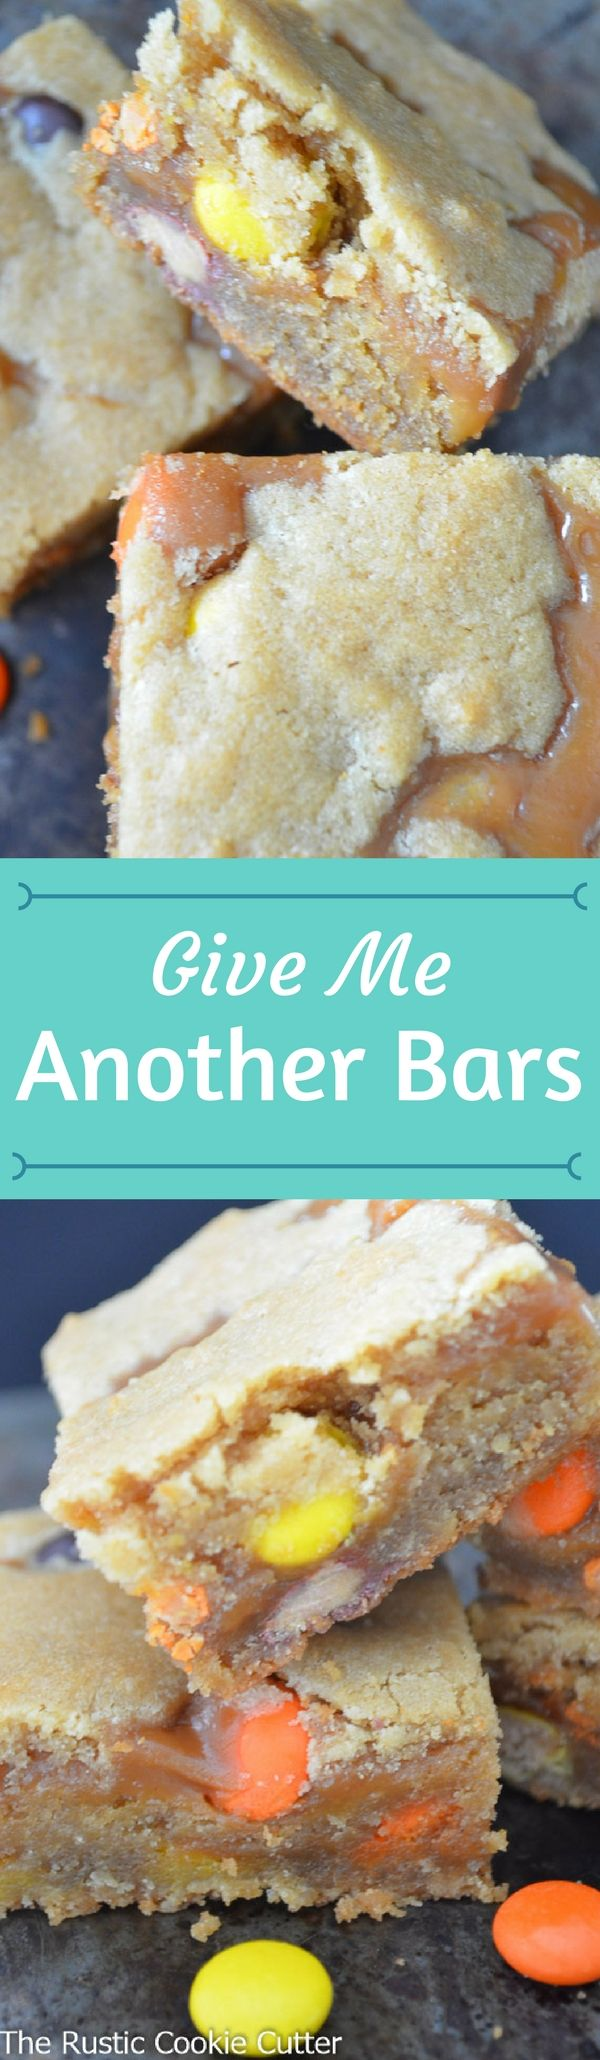 Give Me Another Bars are chock full of peanut butter in all the right ways! Chewy peanut butter cookie bar with ooey, gooey peanut butter caramel filling! #homemade #peanutbutter #caramel #bars